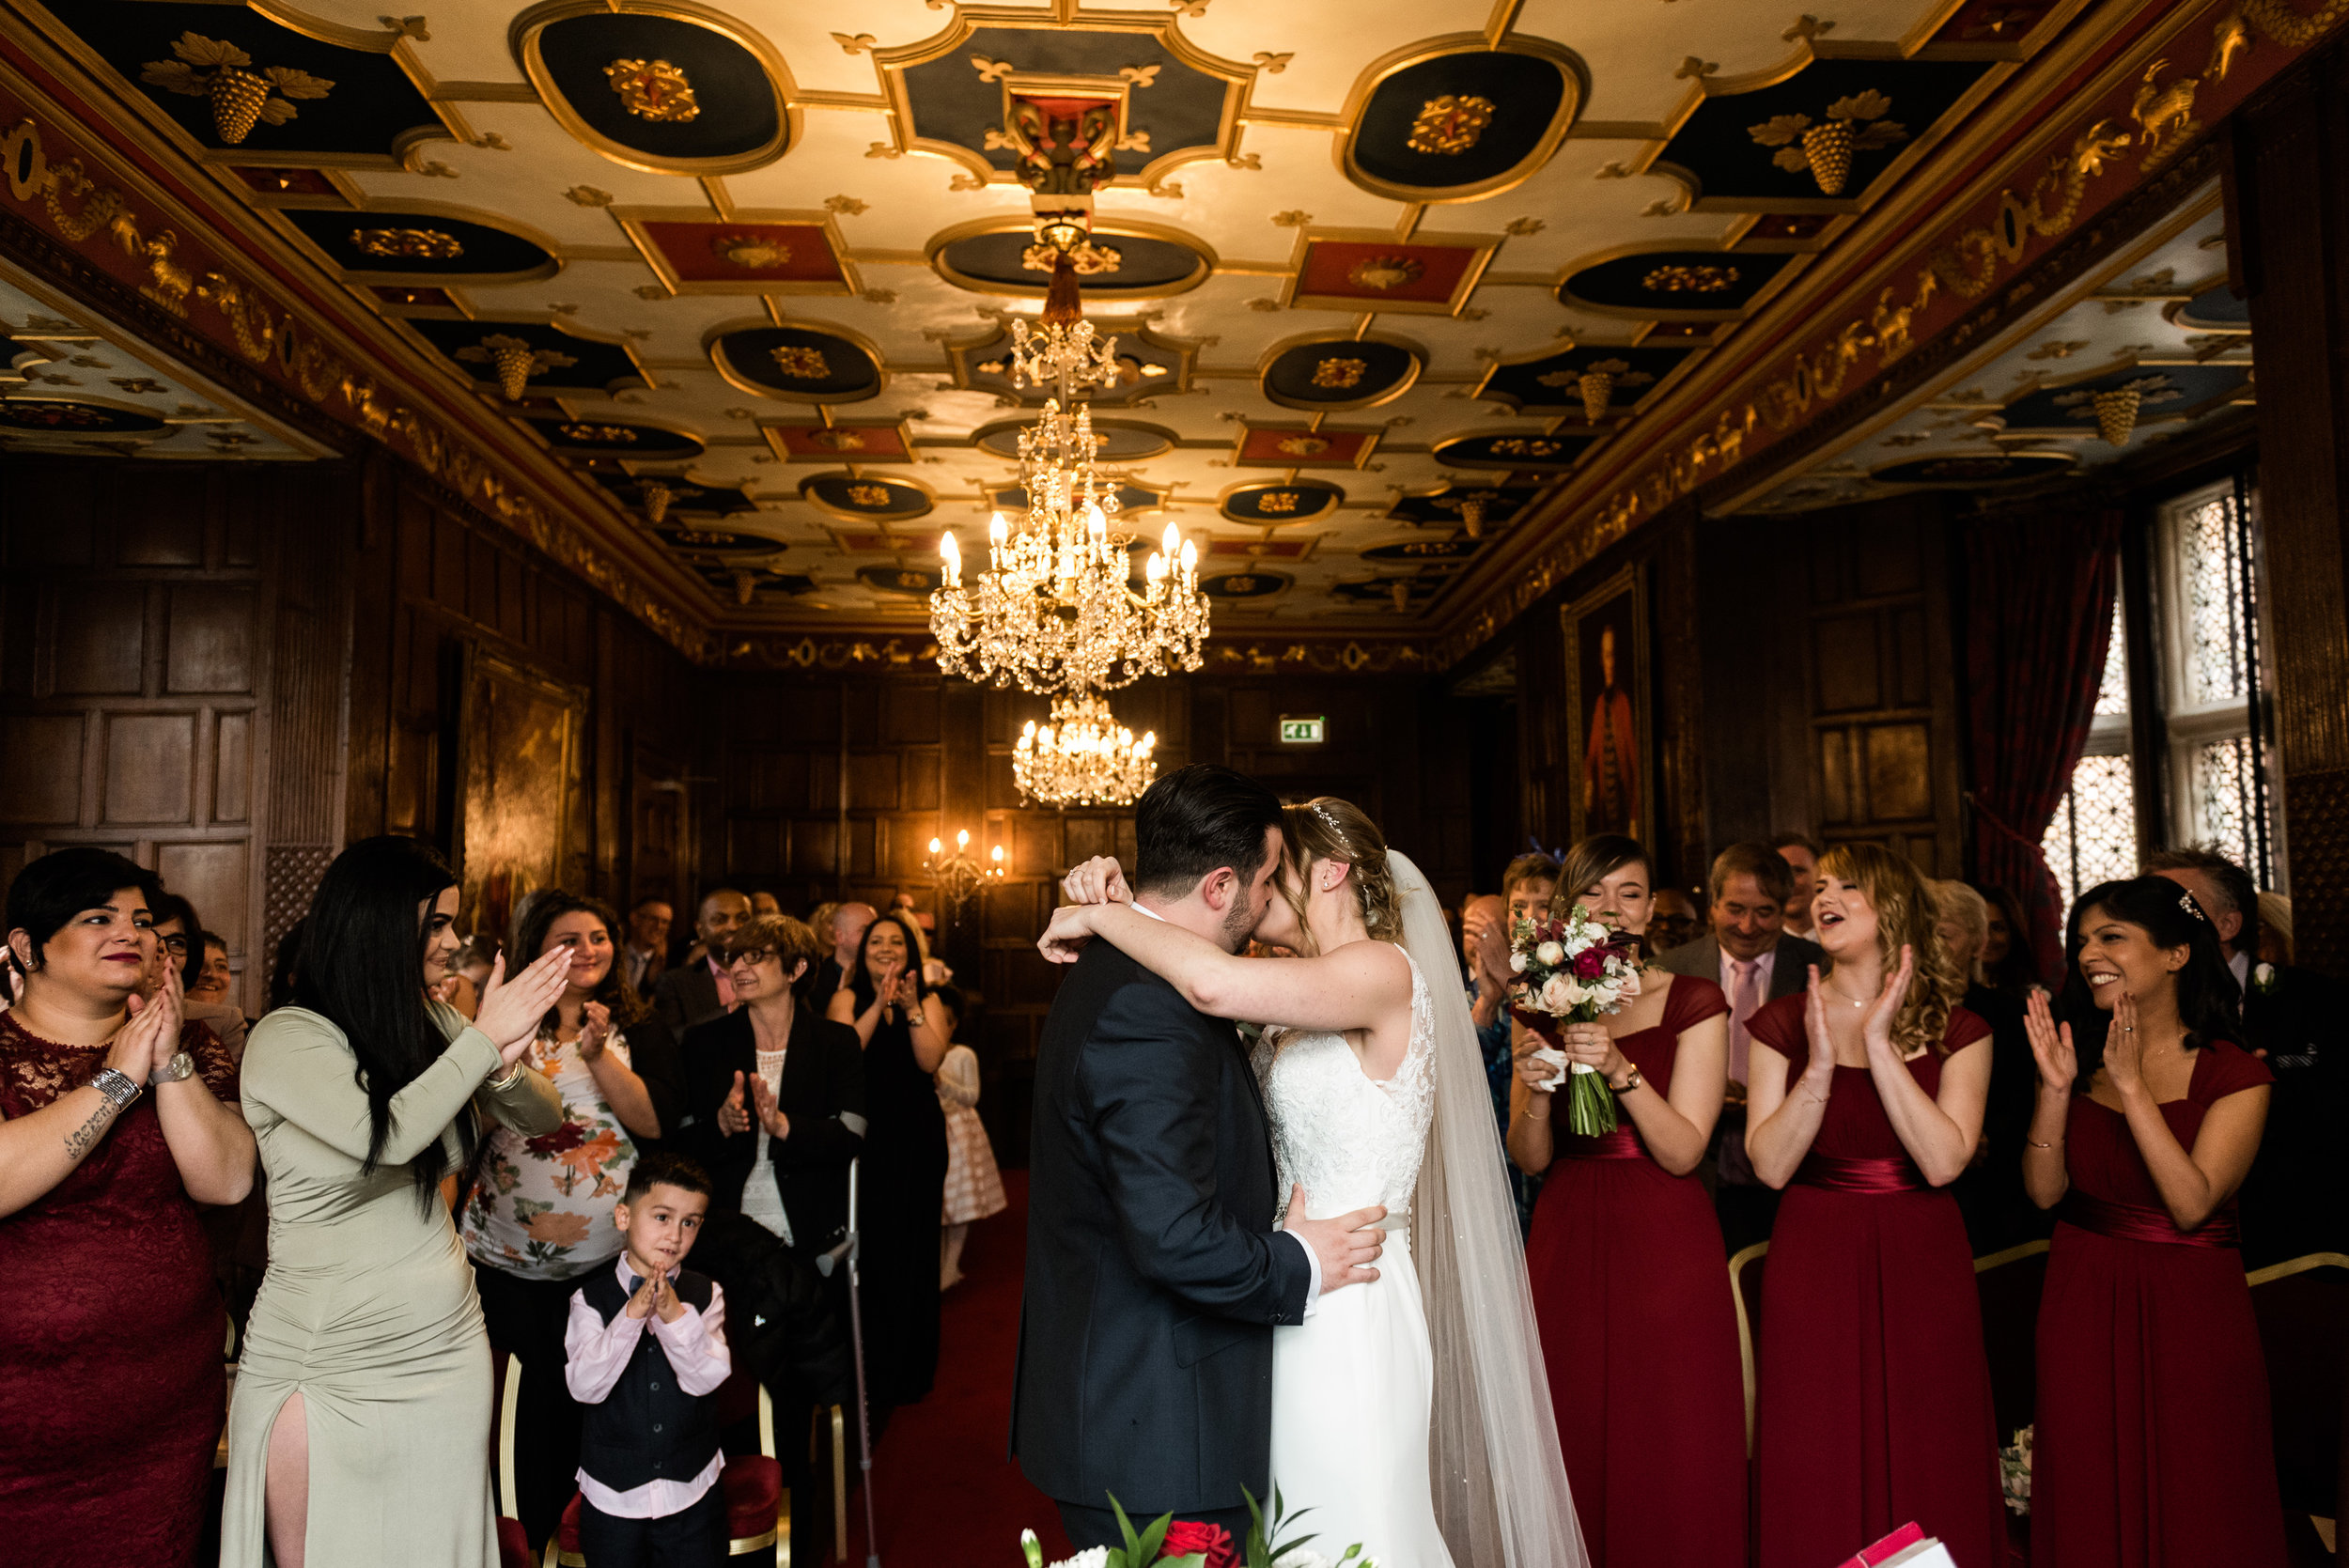 Birmingham Documentary Wedding Photography at New Hall, Sutton Coldfield Turkish Red Candid Reportage - Jenny Harper-32.jpg